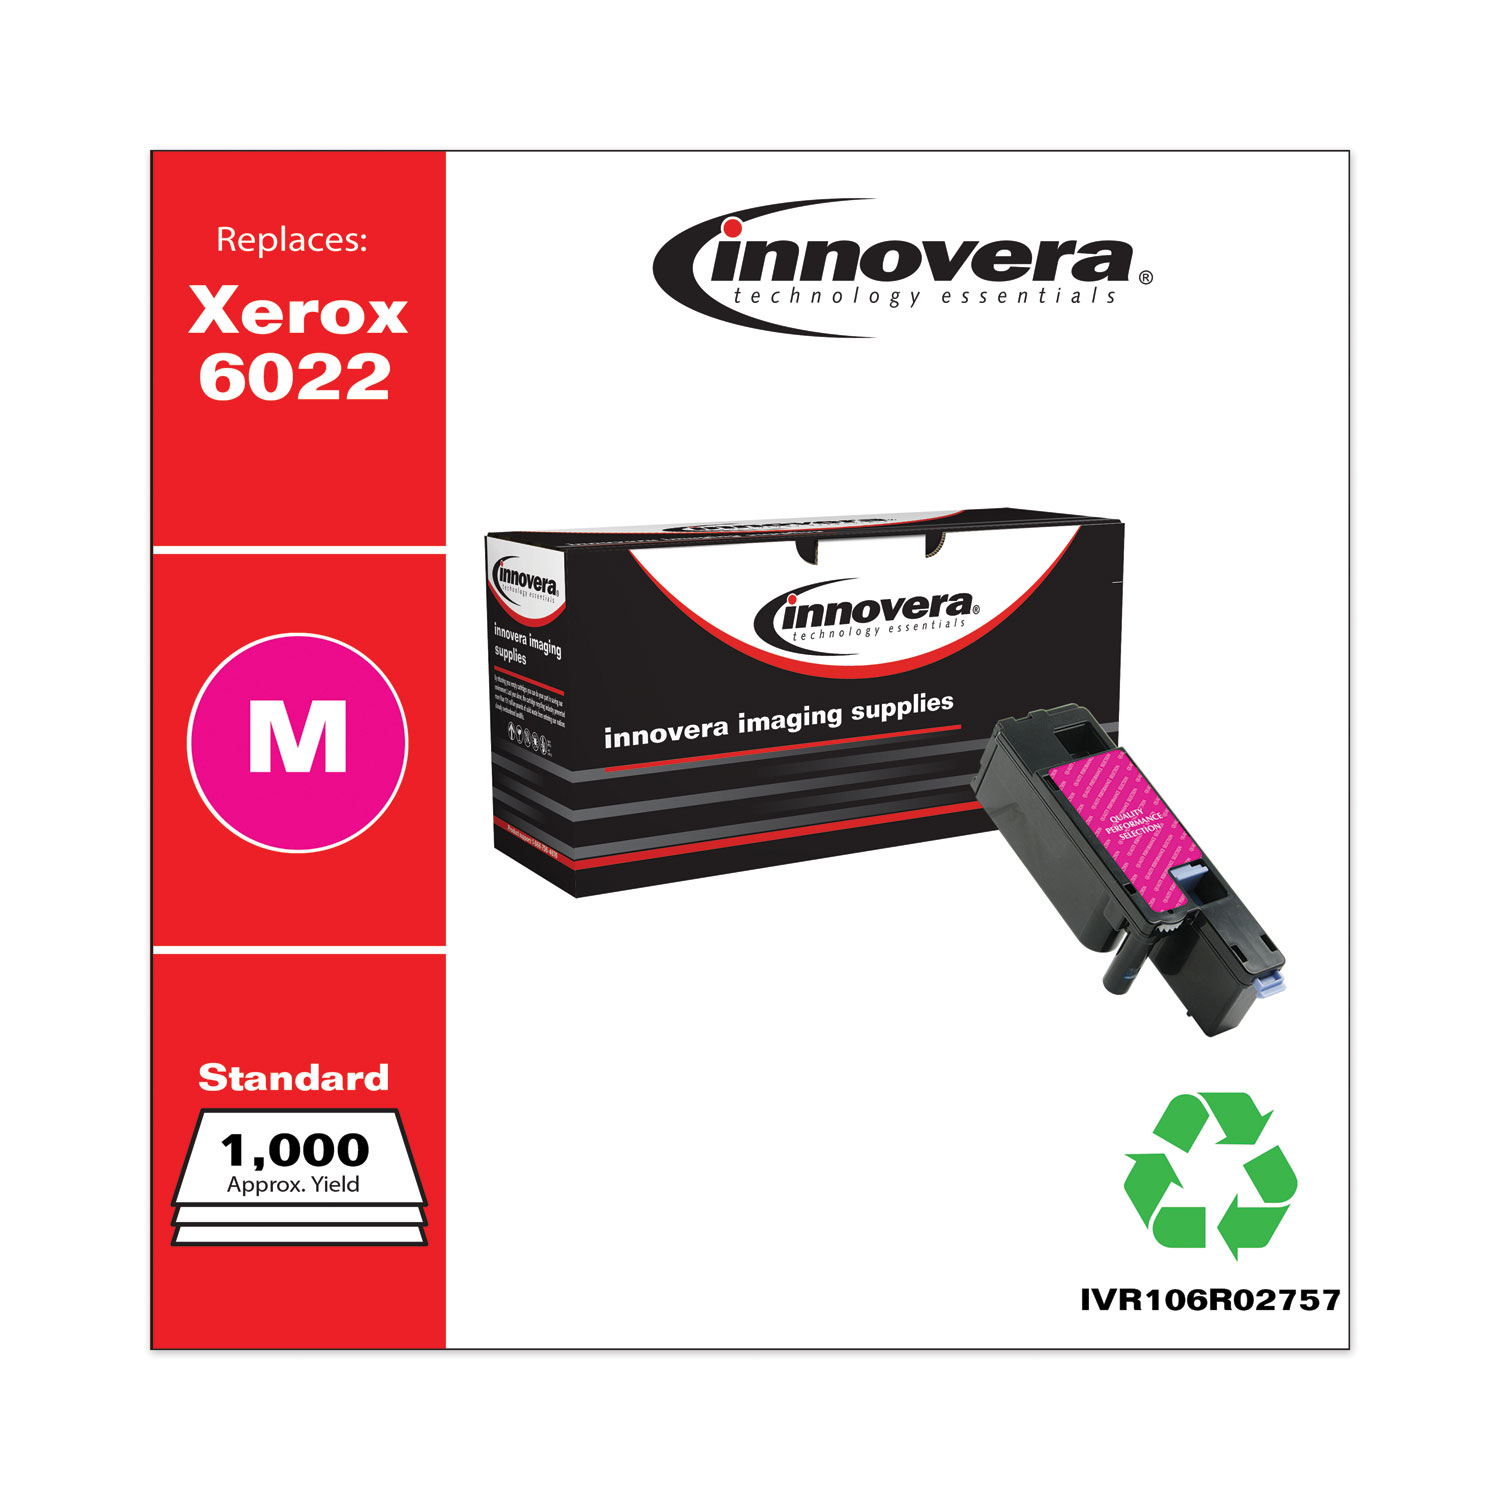 Remanufactured Magenta Toner, Replacement for Xerox 6022 (106R02757), 1,000 Page-Yield IVR106R02757